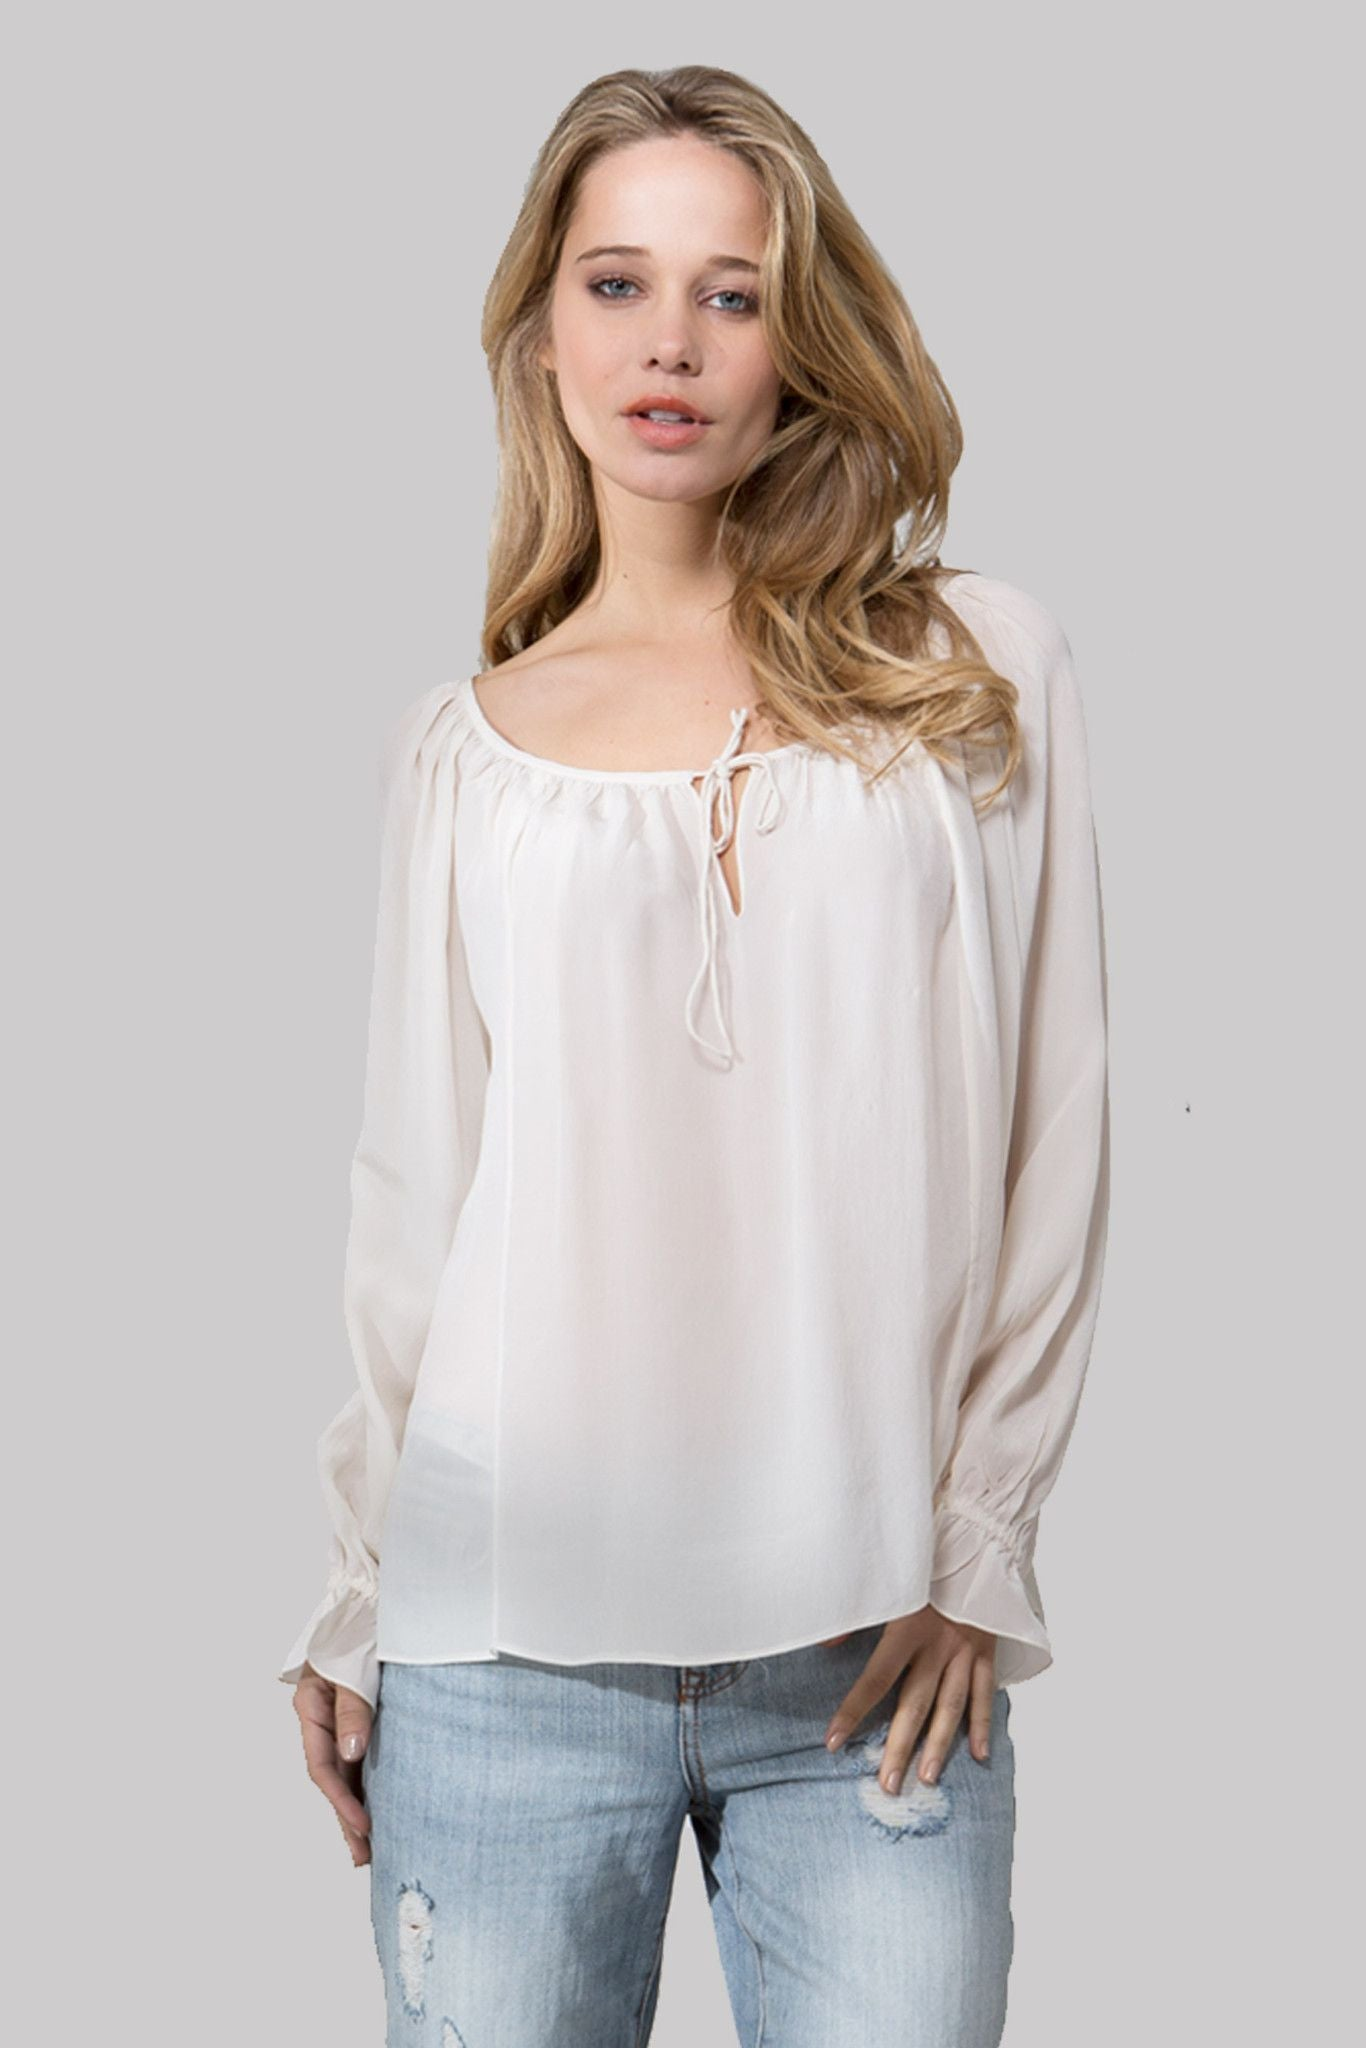 T125 SOLID BLOUSE IN CDC MARSHMALLOW